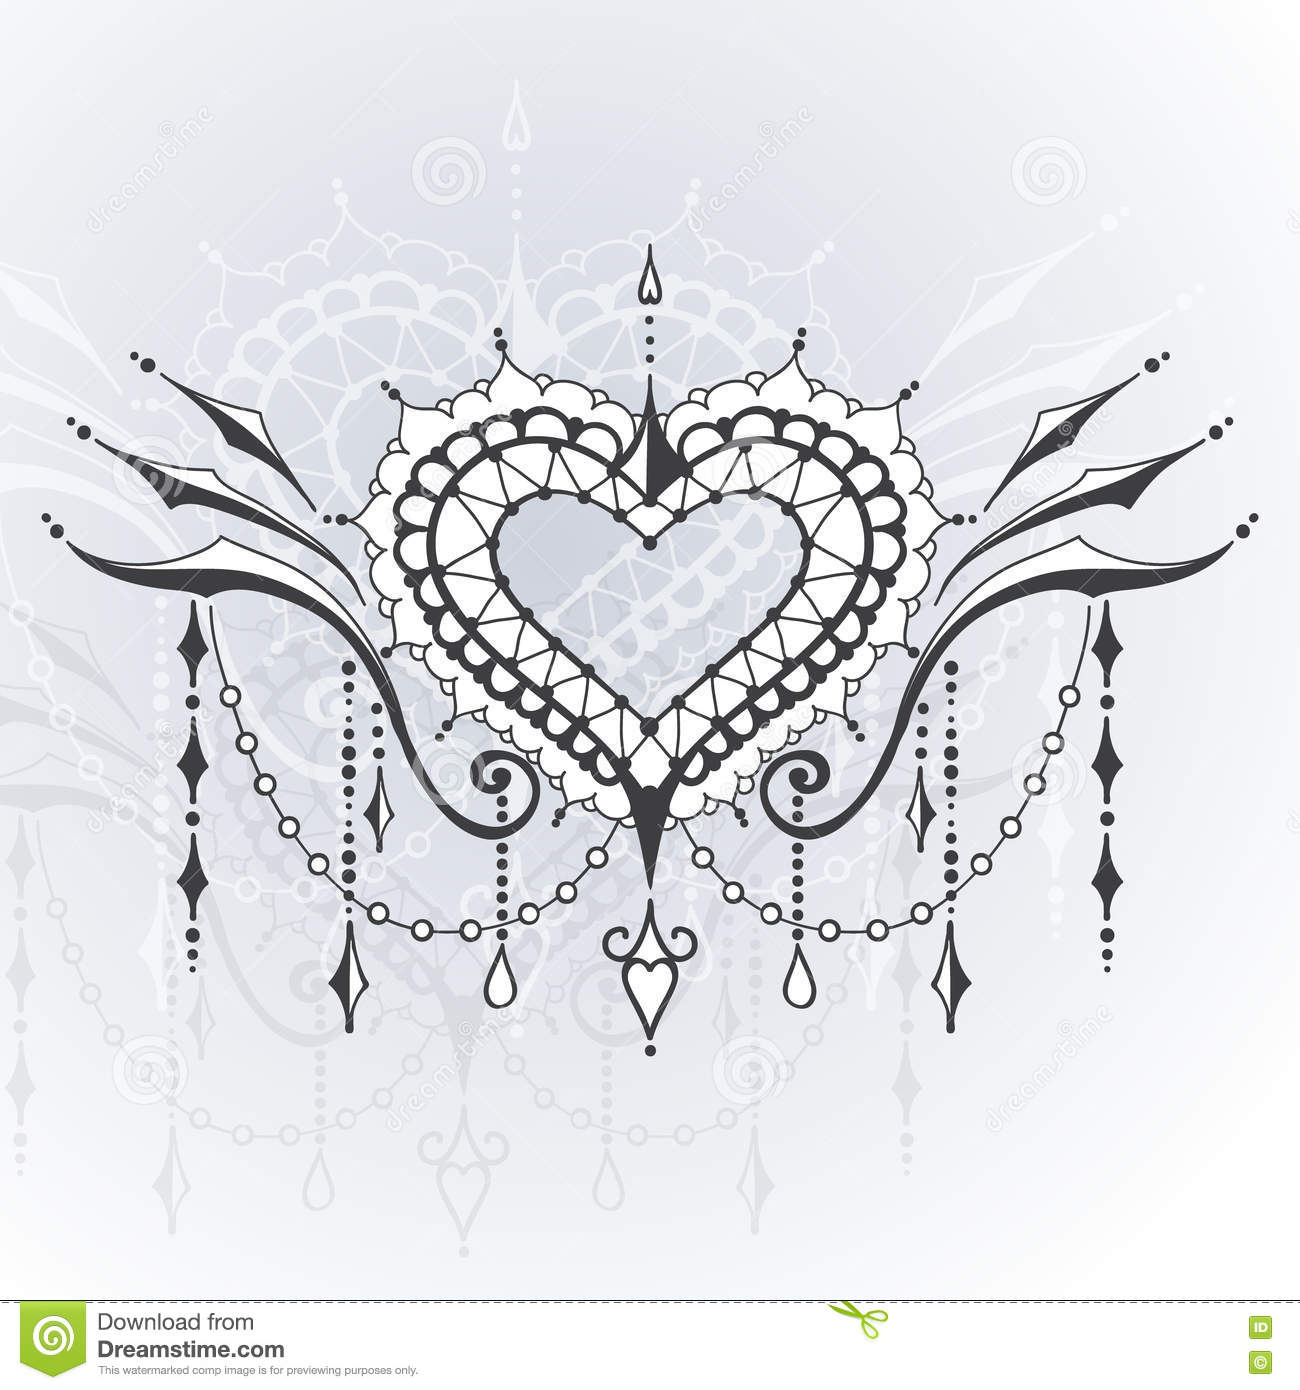 Sketch Of Tattoo Henna Hearts Stock Vector Illustration Of Curve